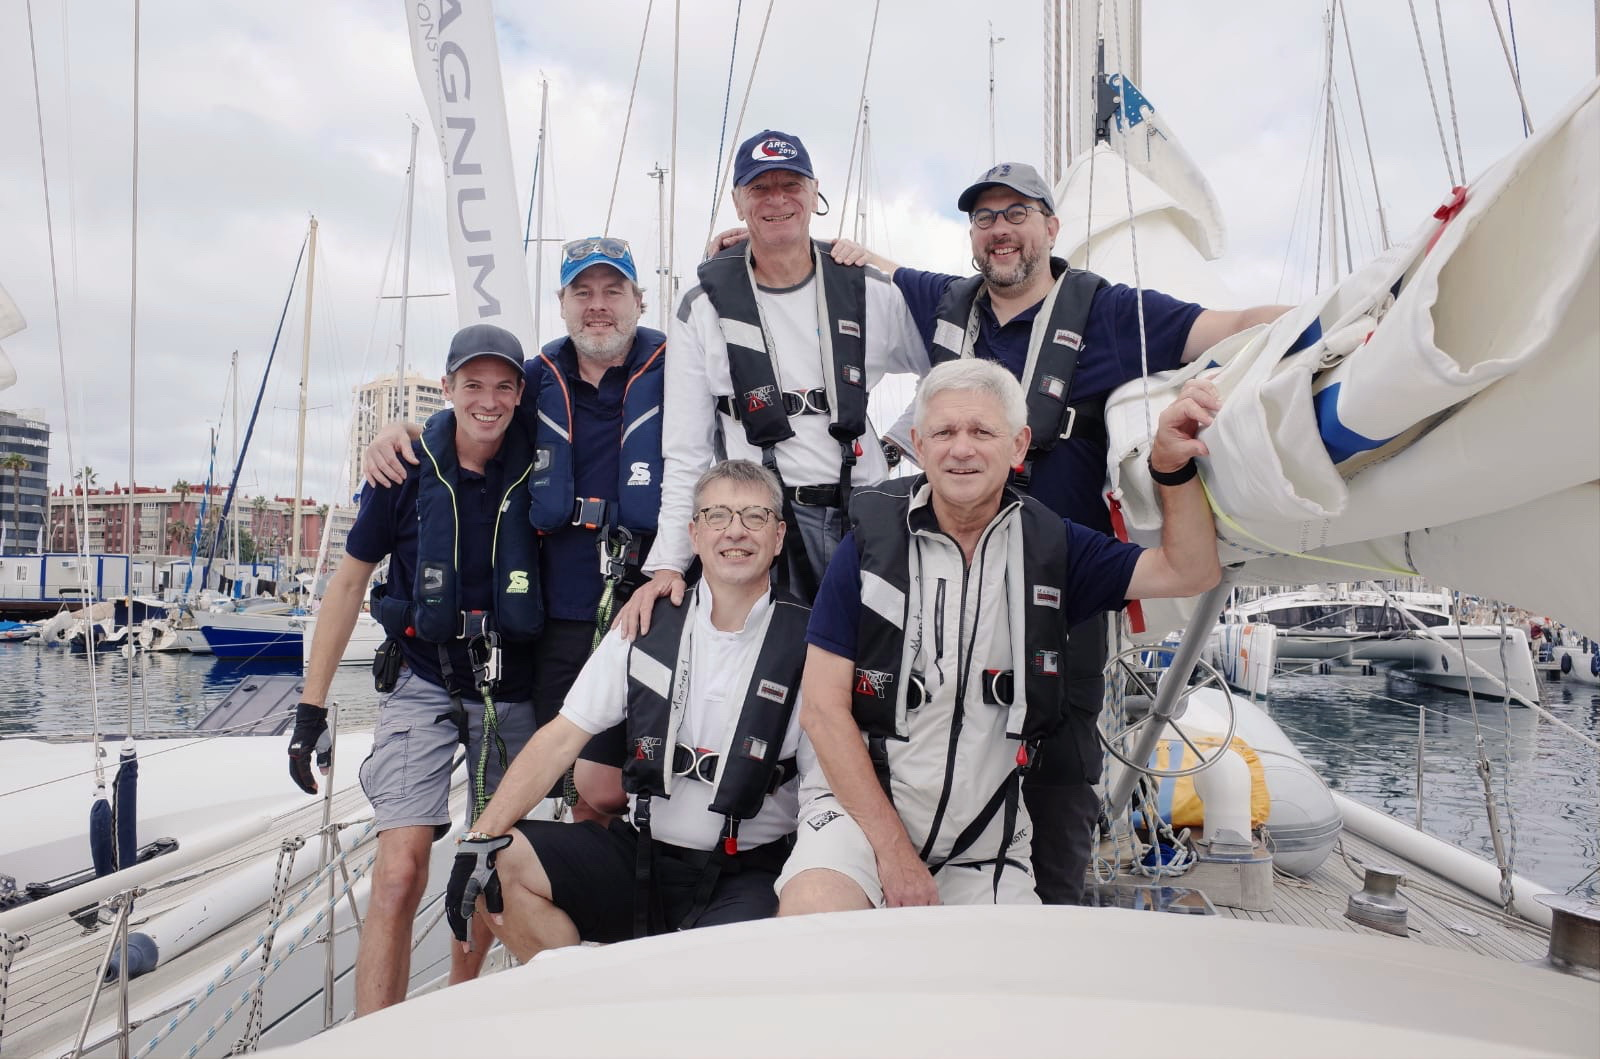 Markus Bocks and his ARC Crew 2019 on SY Montana, Swan48